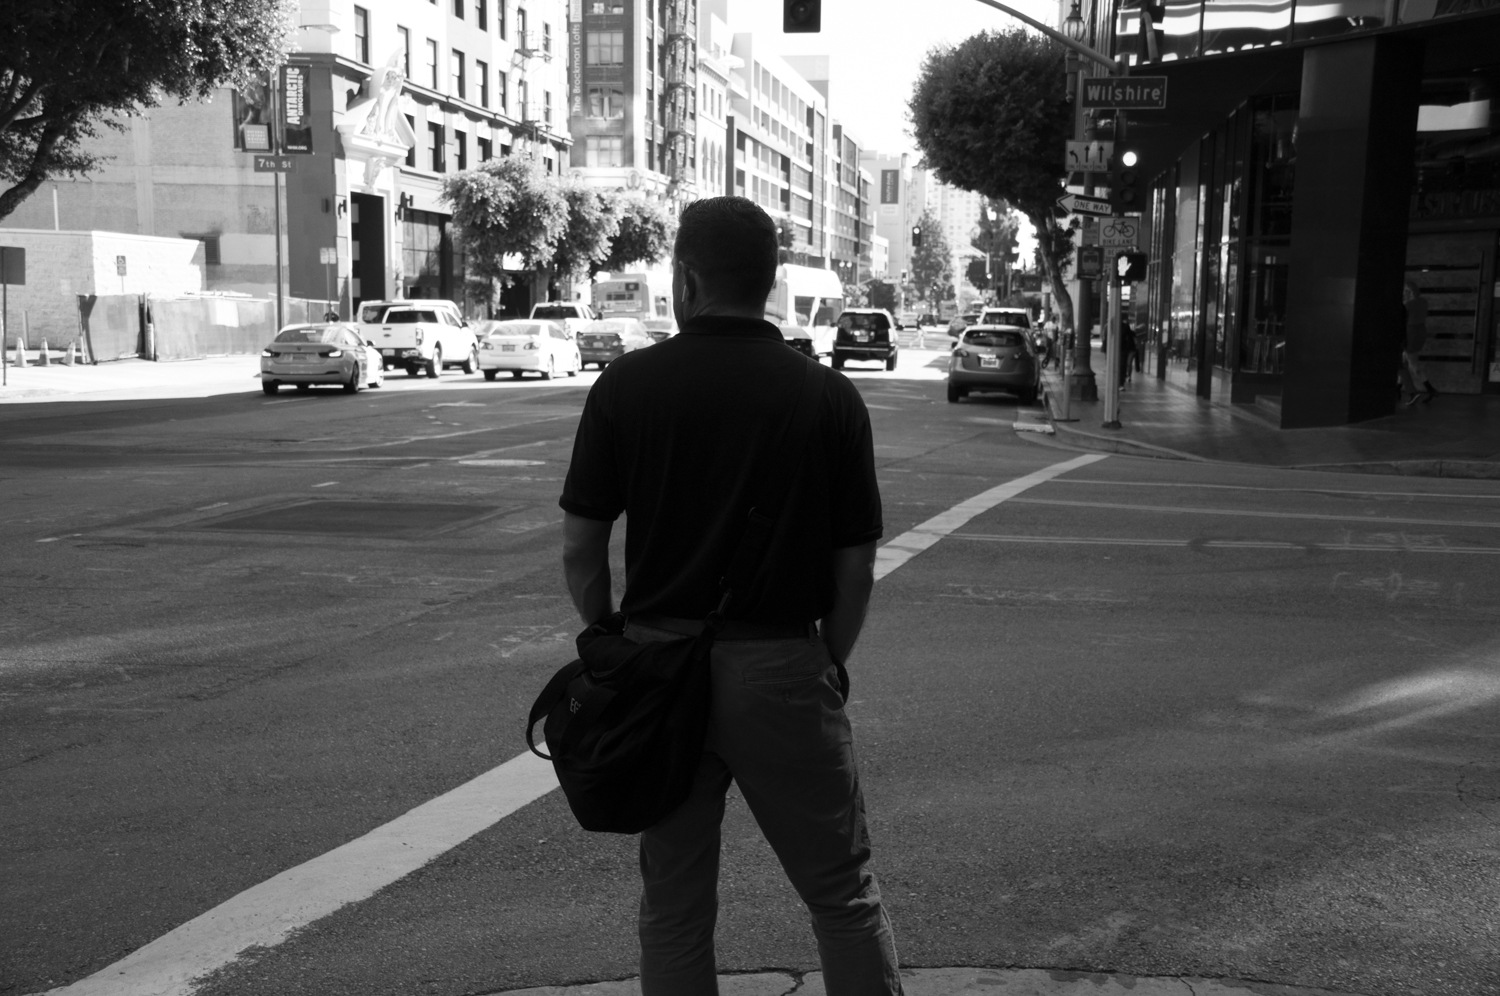 This is image is proof that I've watched The Dark Knight a lot. I couldn't pass up an image of a man standing at an urban street corner…